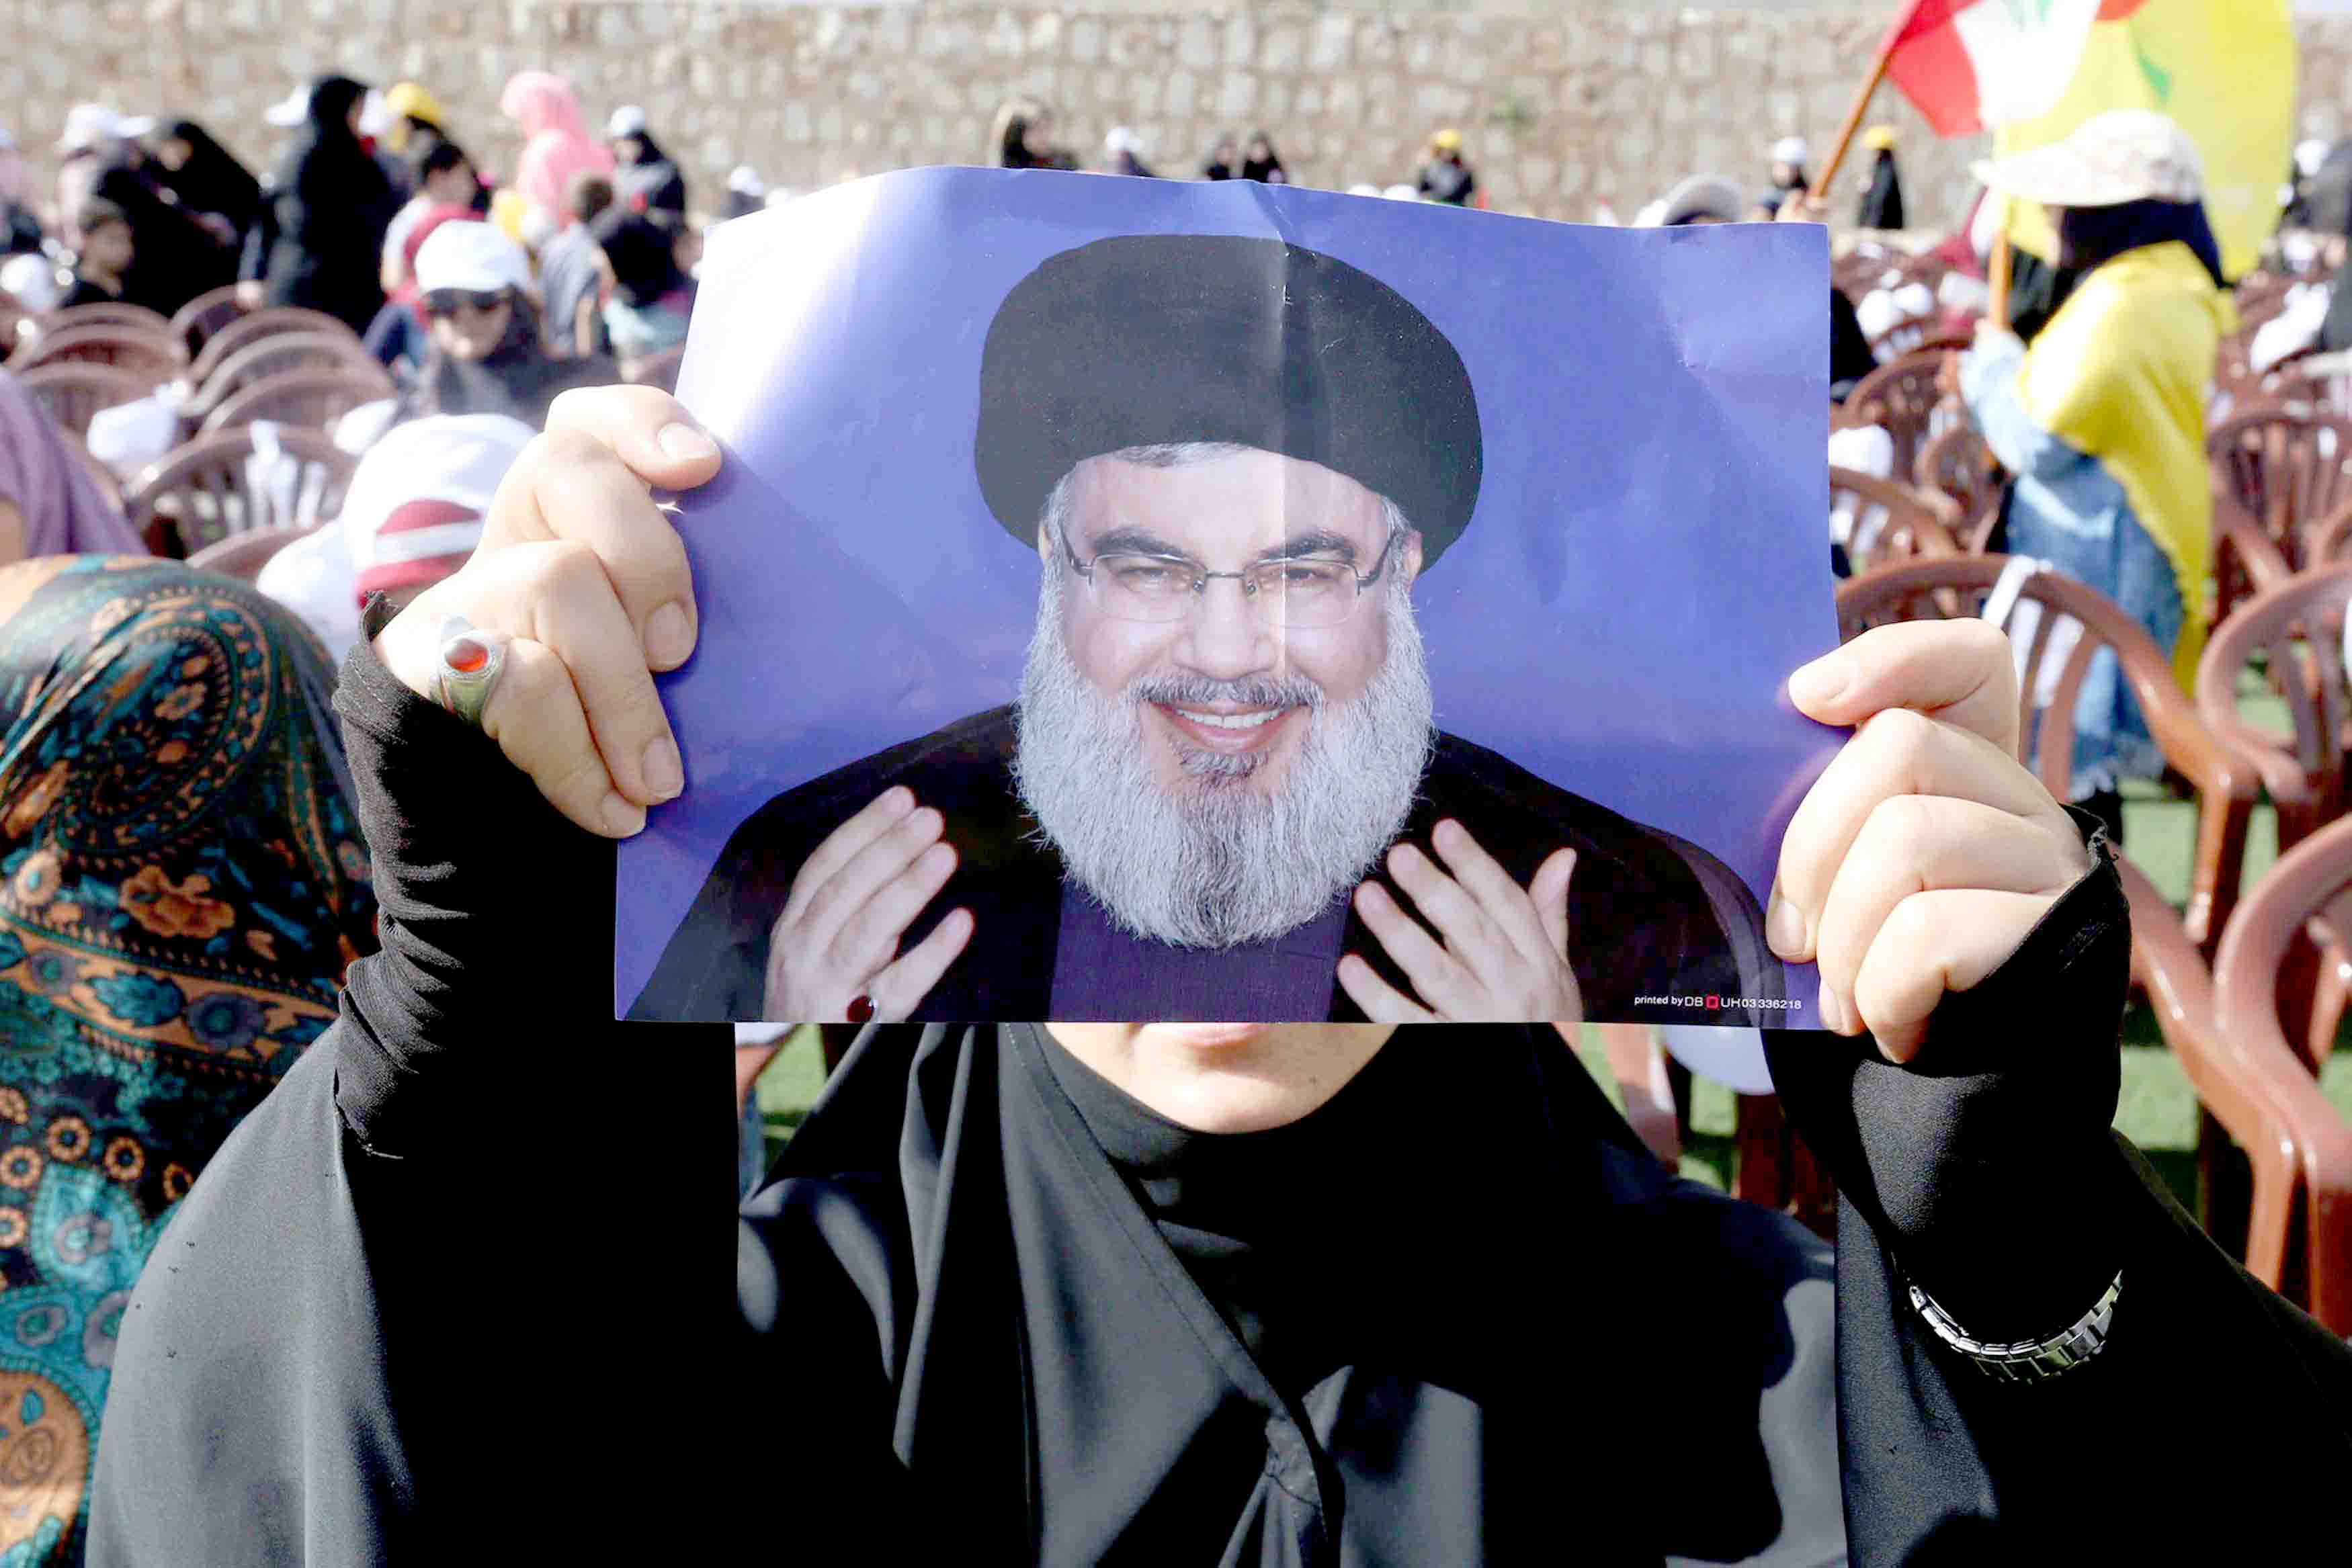 A Hezbollah supporter carries a poster of the group's leader Sayyed Hassan Nasrallah in Maroun al-Ras village in southern Lebanon. (Reuters)